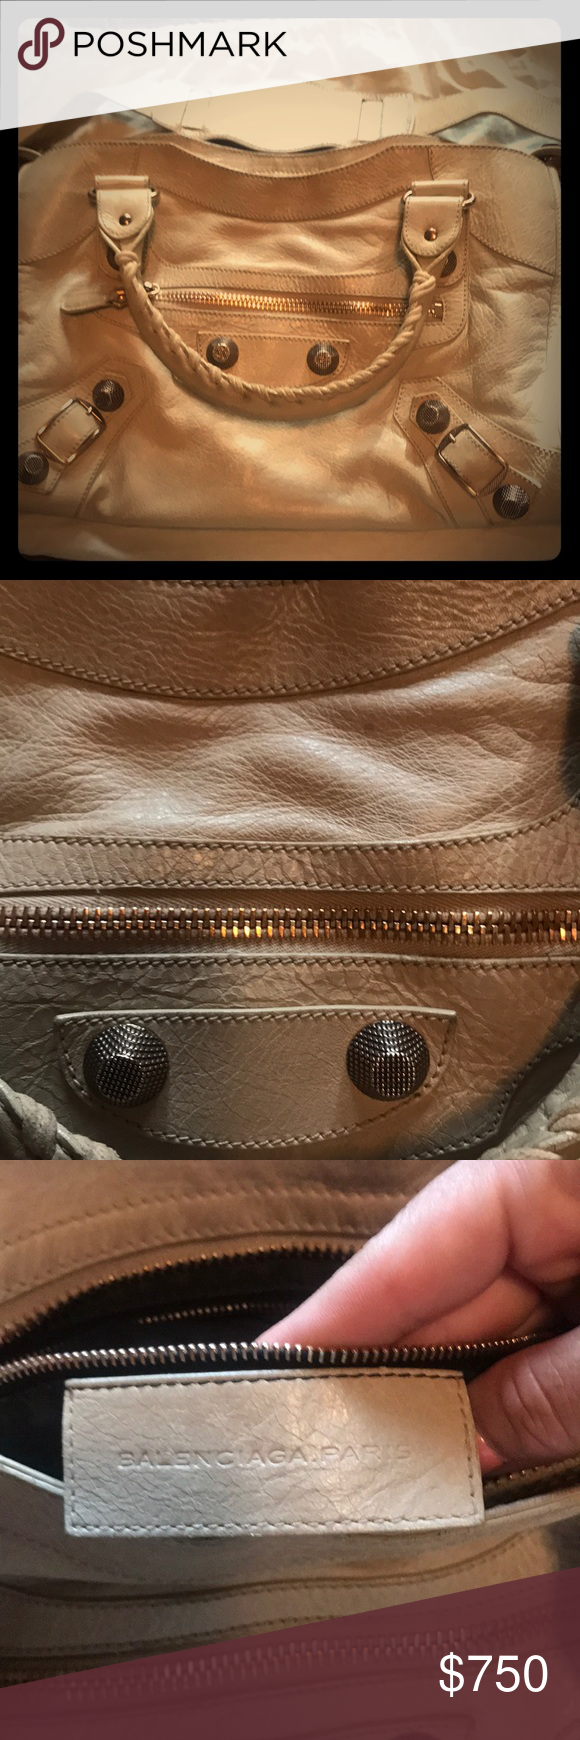 New never used coach purse